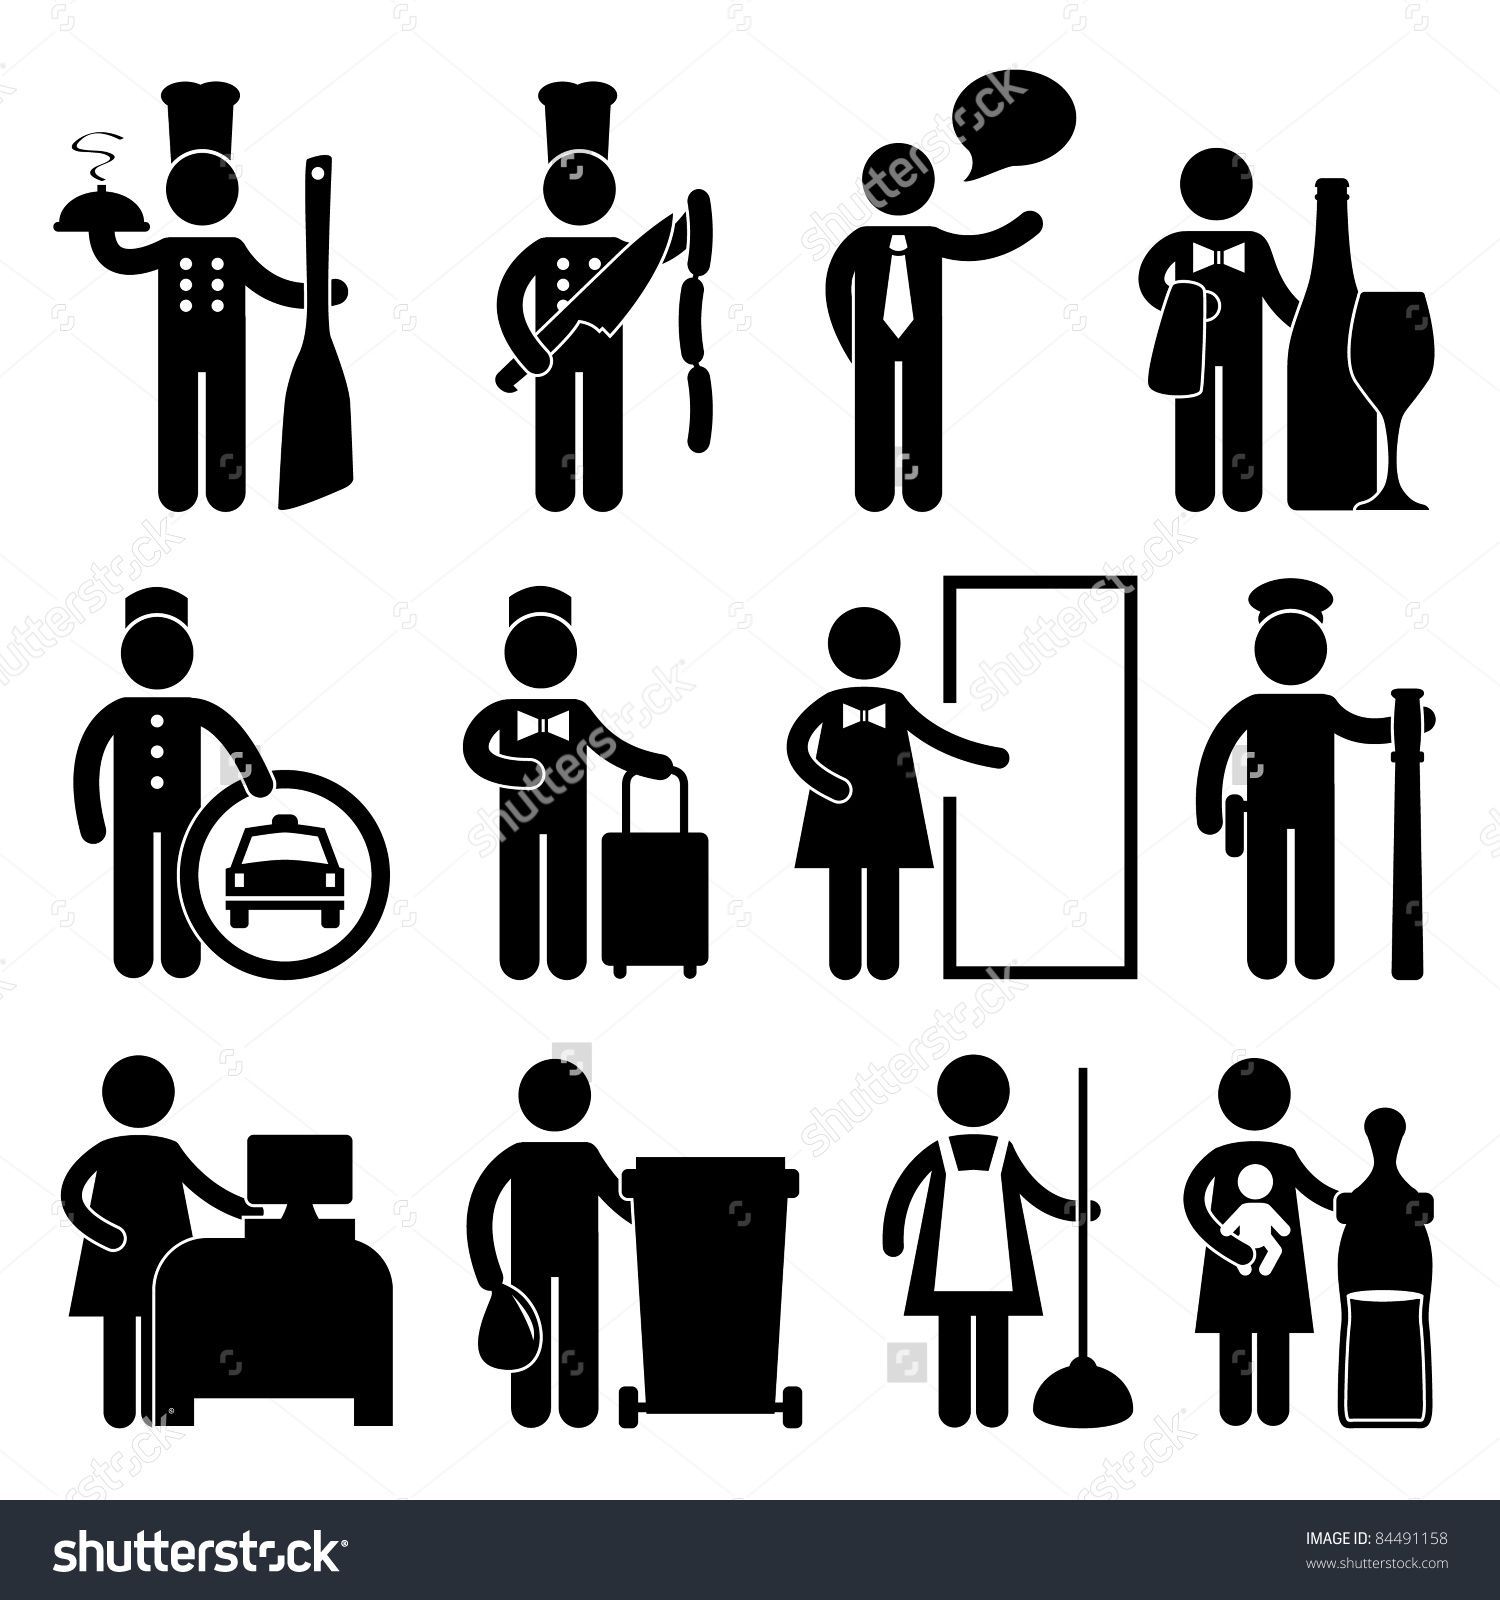 Pin by cork bored on Assortment of Stick Figures